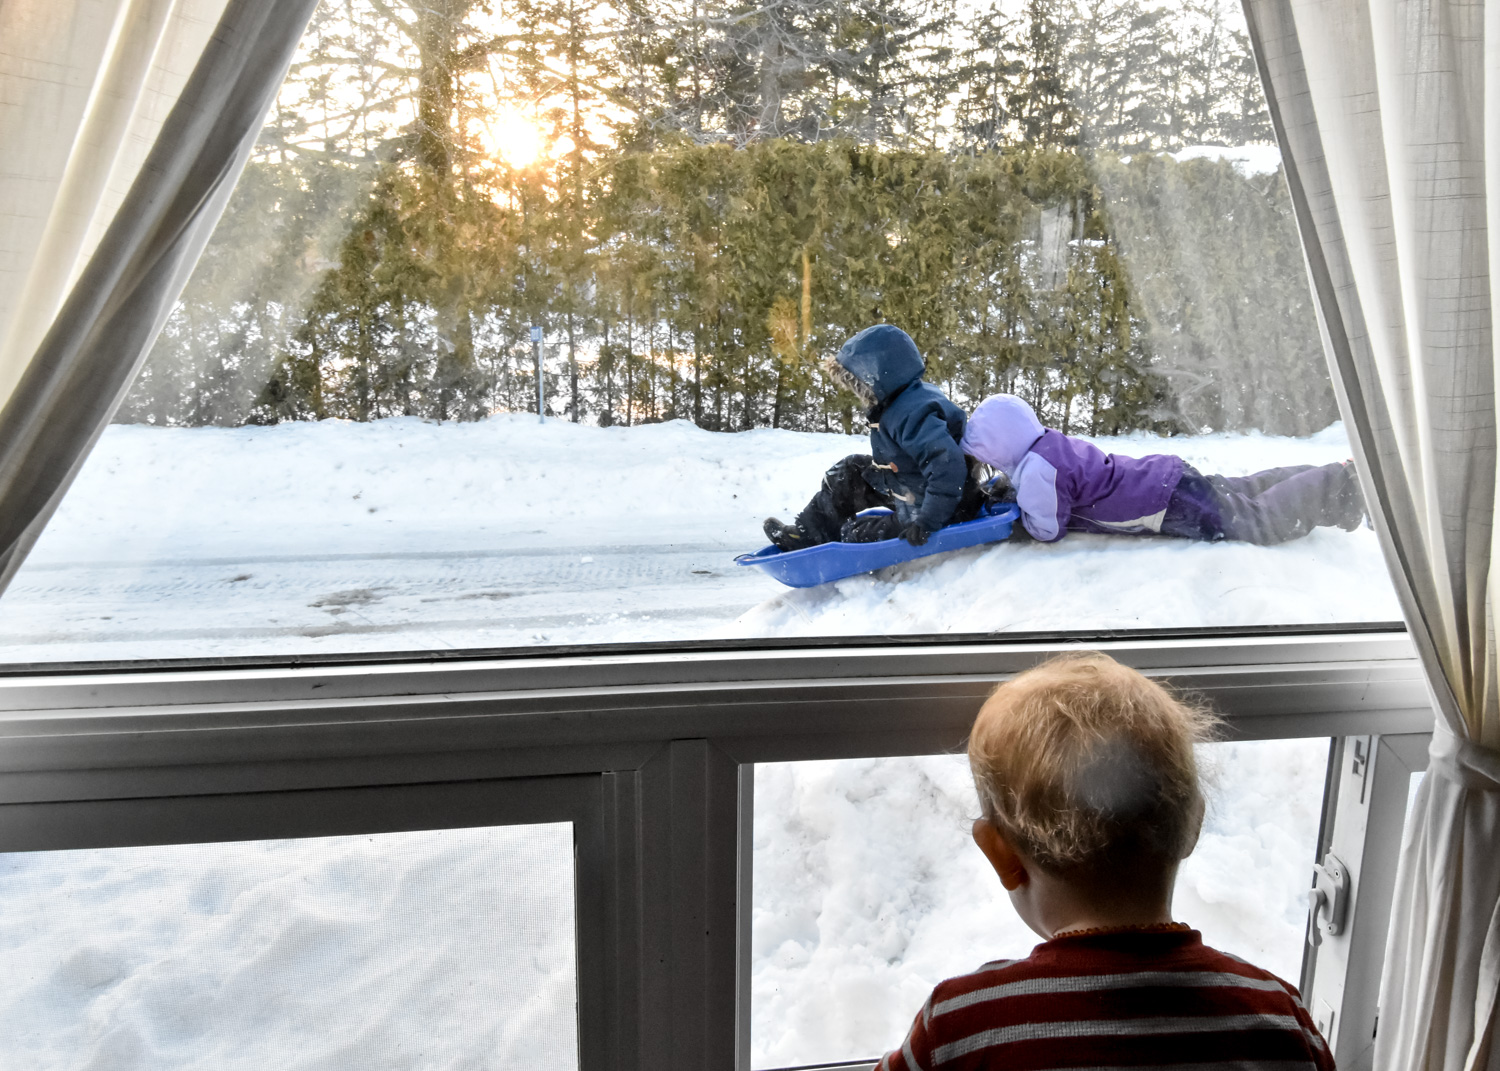 Golden hour photography of kids sledding in the snow